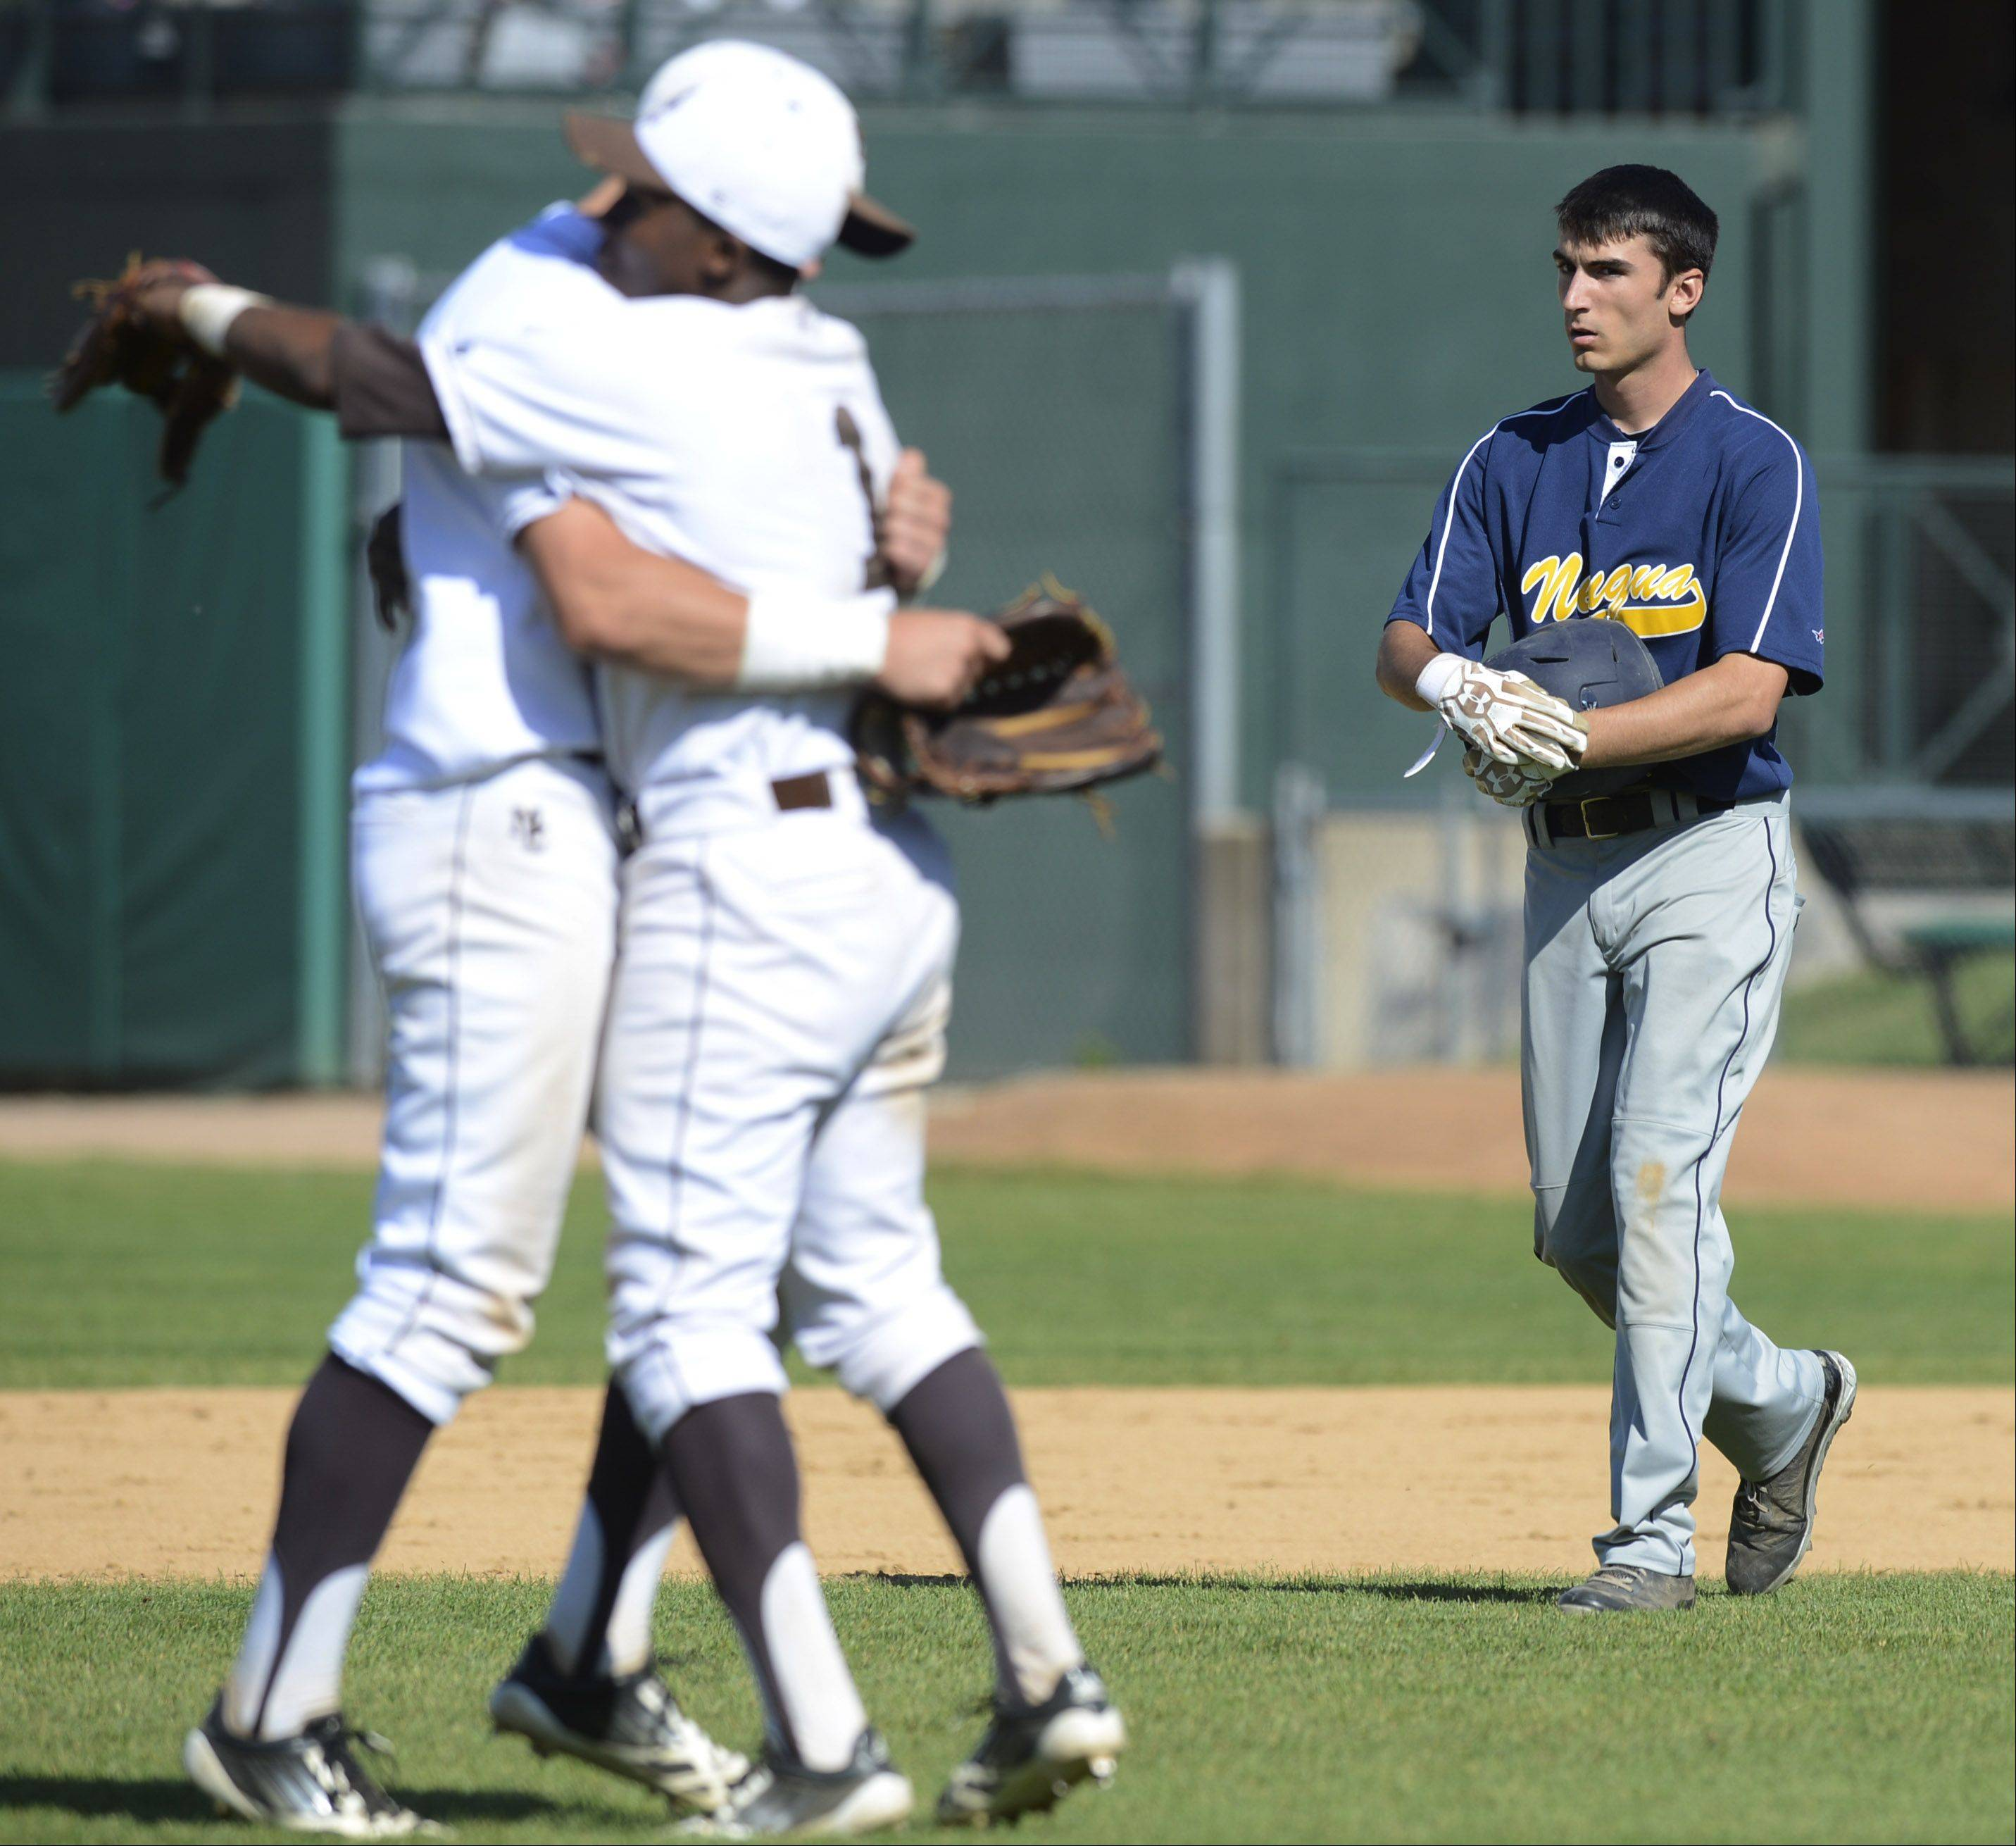 Neuqua Valley's Josh Piotrowski walks past celebrating Mt. Carmel players during the Class 4A state baseball semifinals at Silver Cross Field in Joliet Friday.